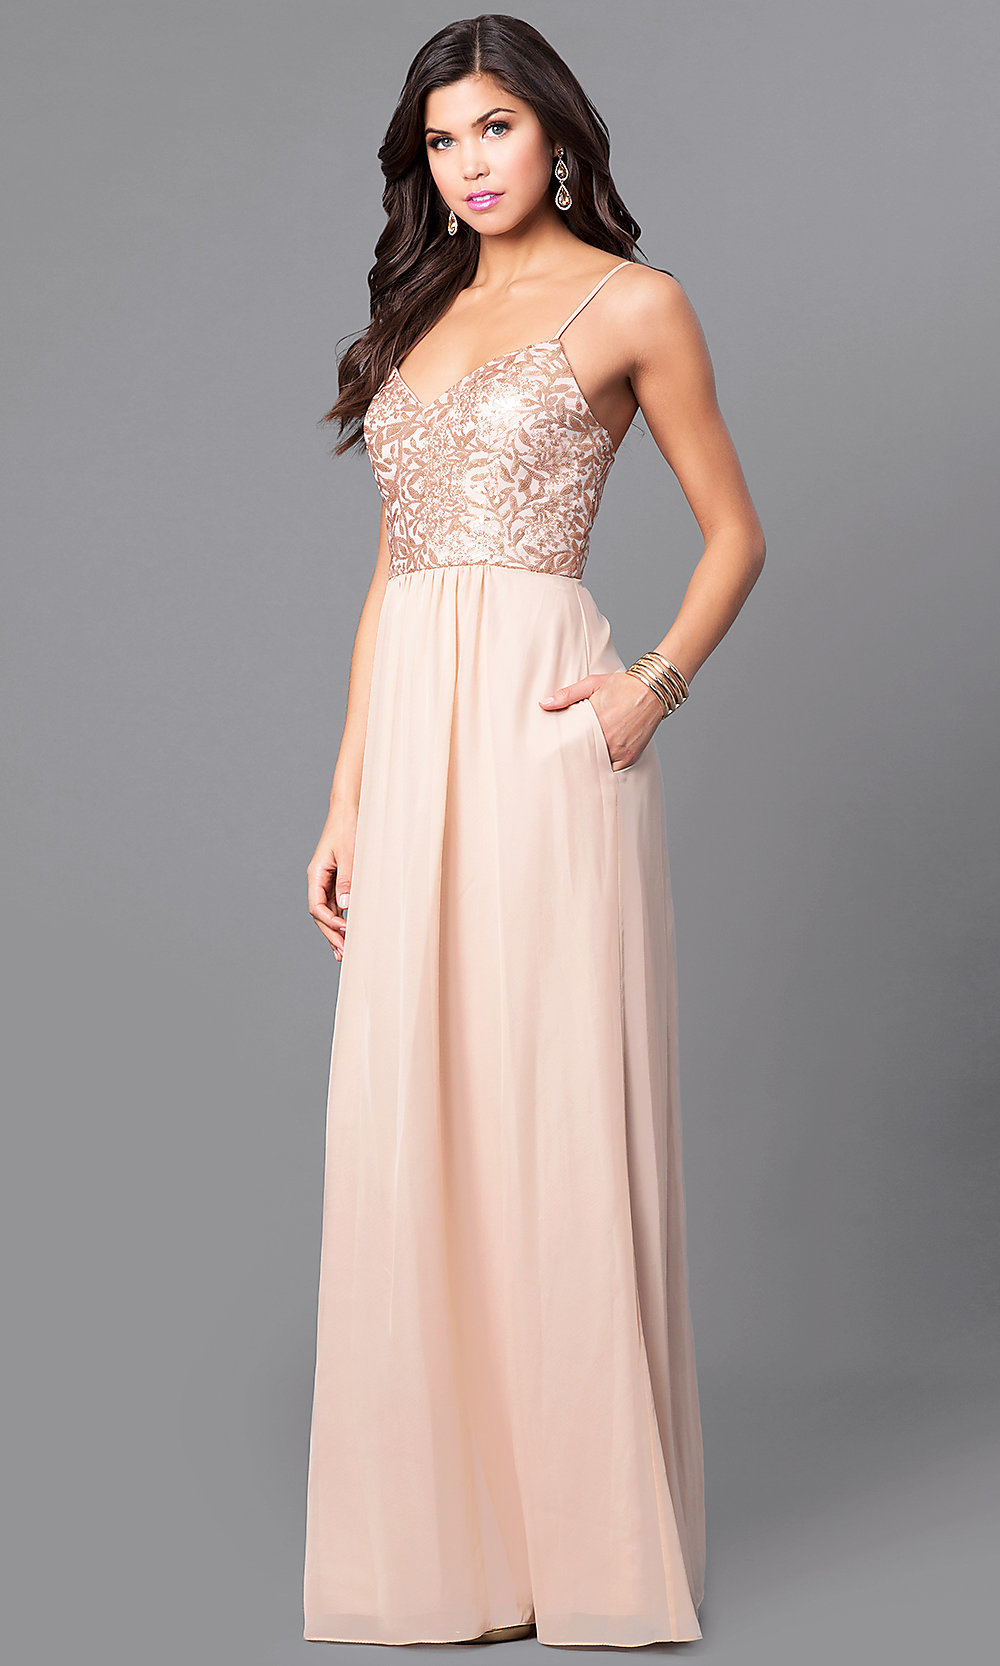 gold chiffon prom dress with sequin bodice promgirl